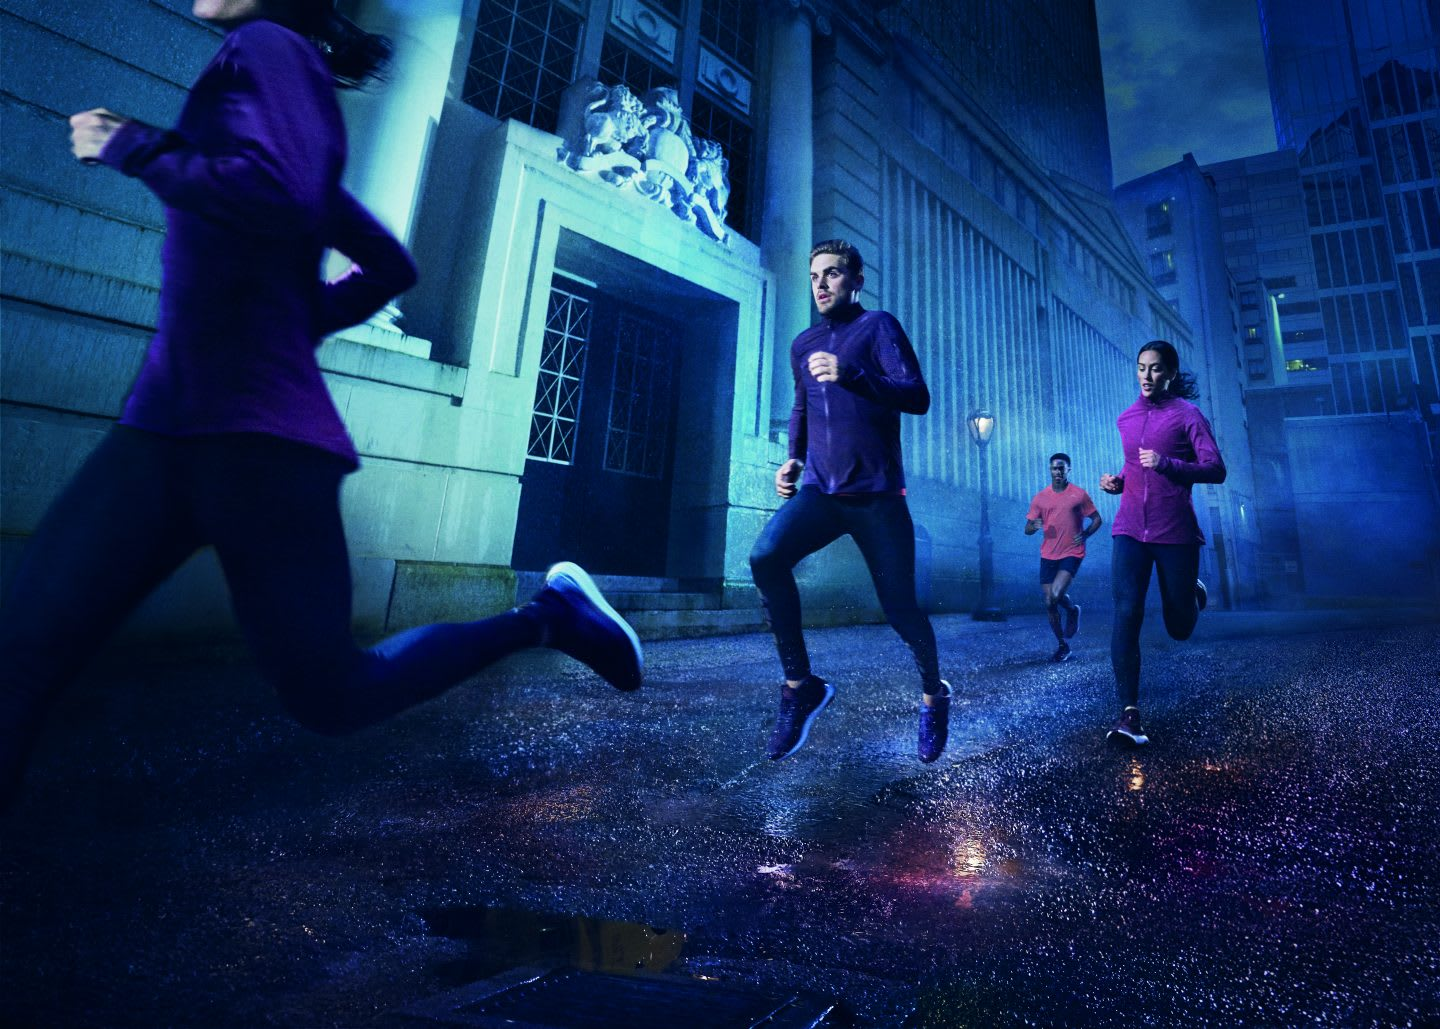 People running at night in a street, adidas, GamePlan A, holidays, work-life balance, fitness, self-improvement